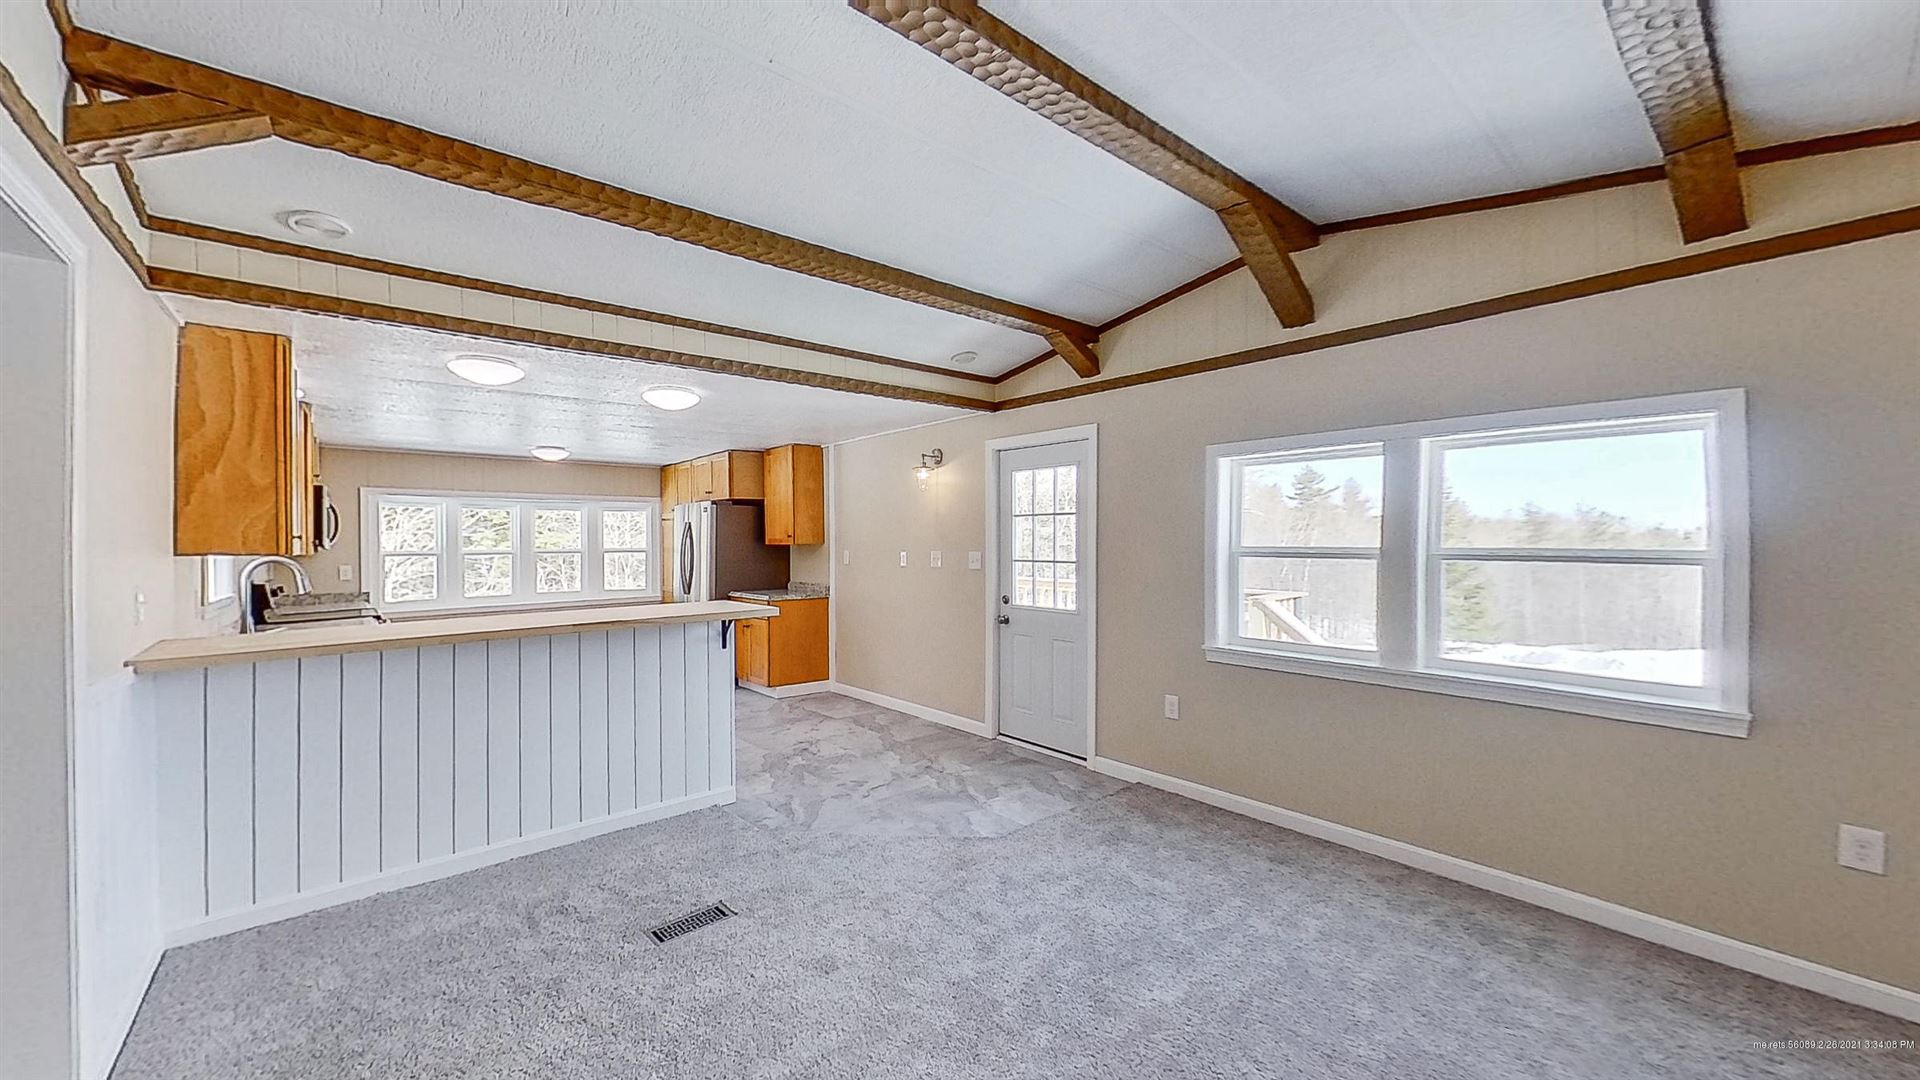 Photo of 9 Wing Hill Road, Manchester, ME 04351 (MLS # 1483003)